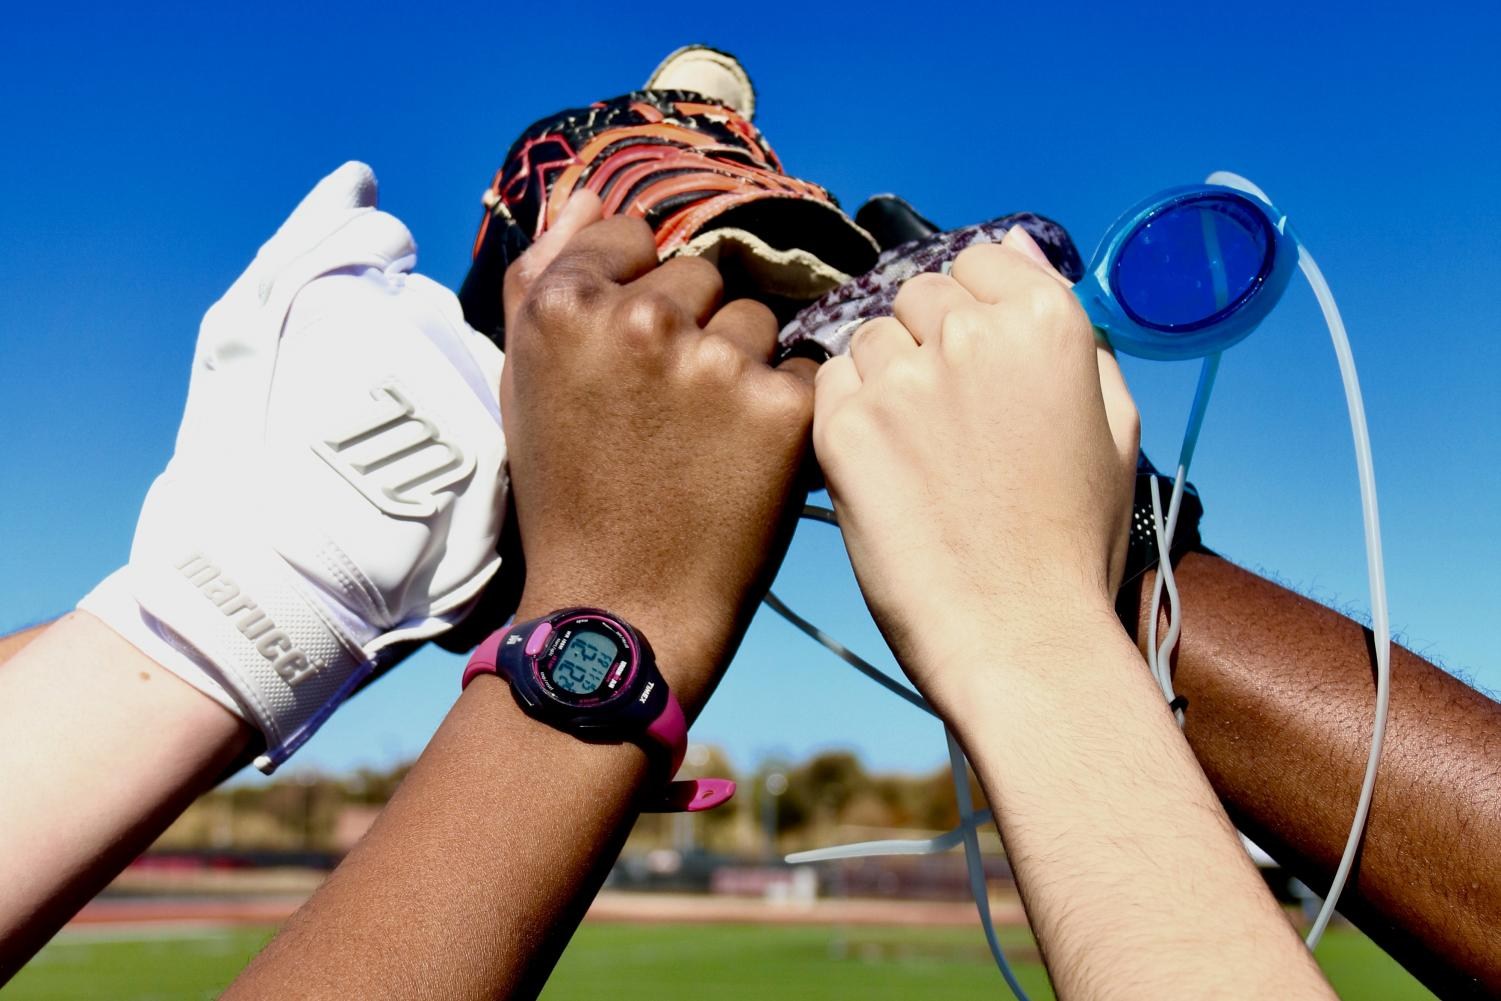 Sports such as softball, cross country, soccer, swimming and football all have races that are stereotyped as participants. These racial patterns can be seen both on a professional and high school level.